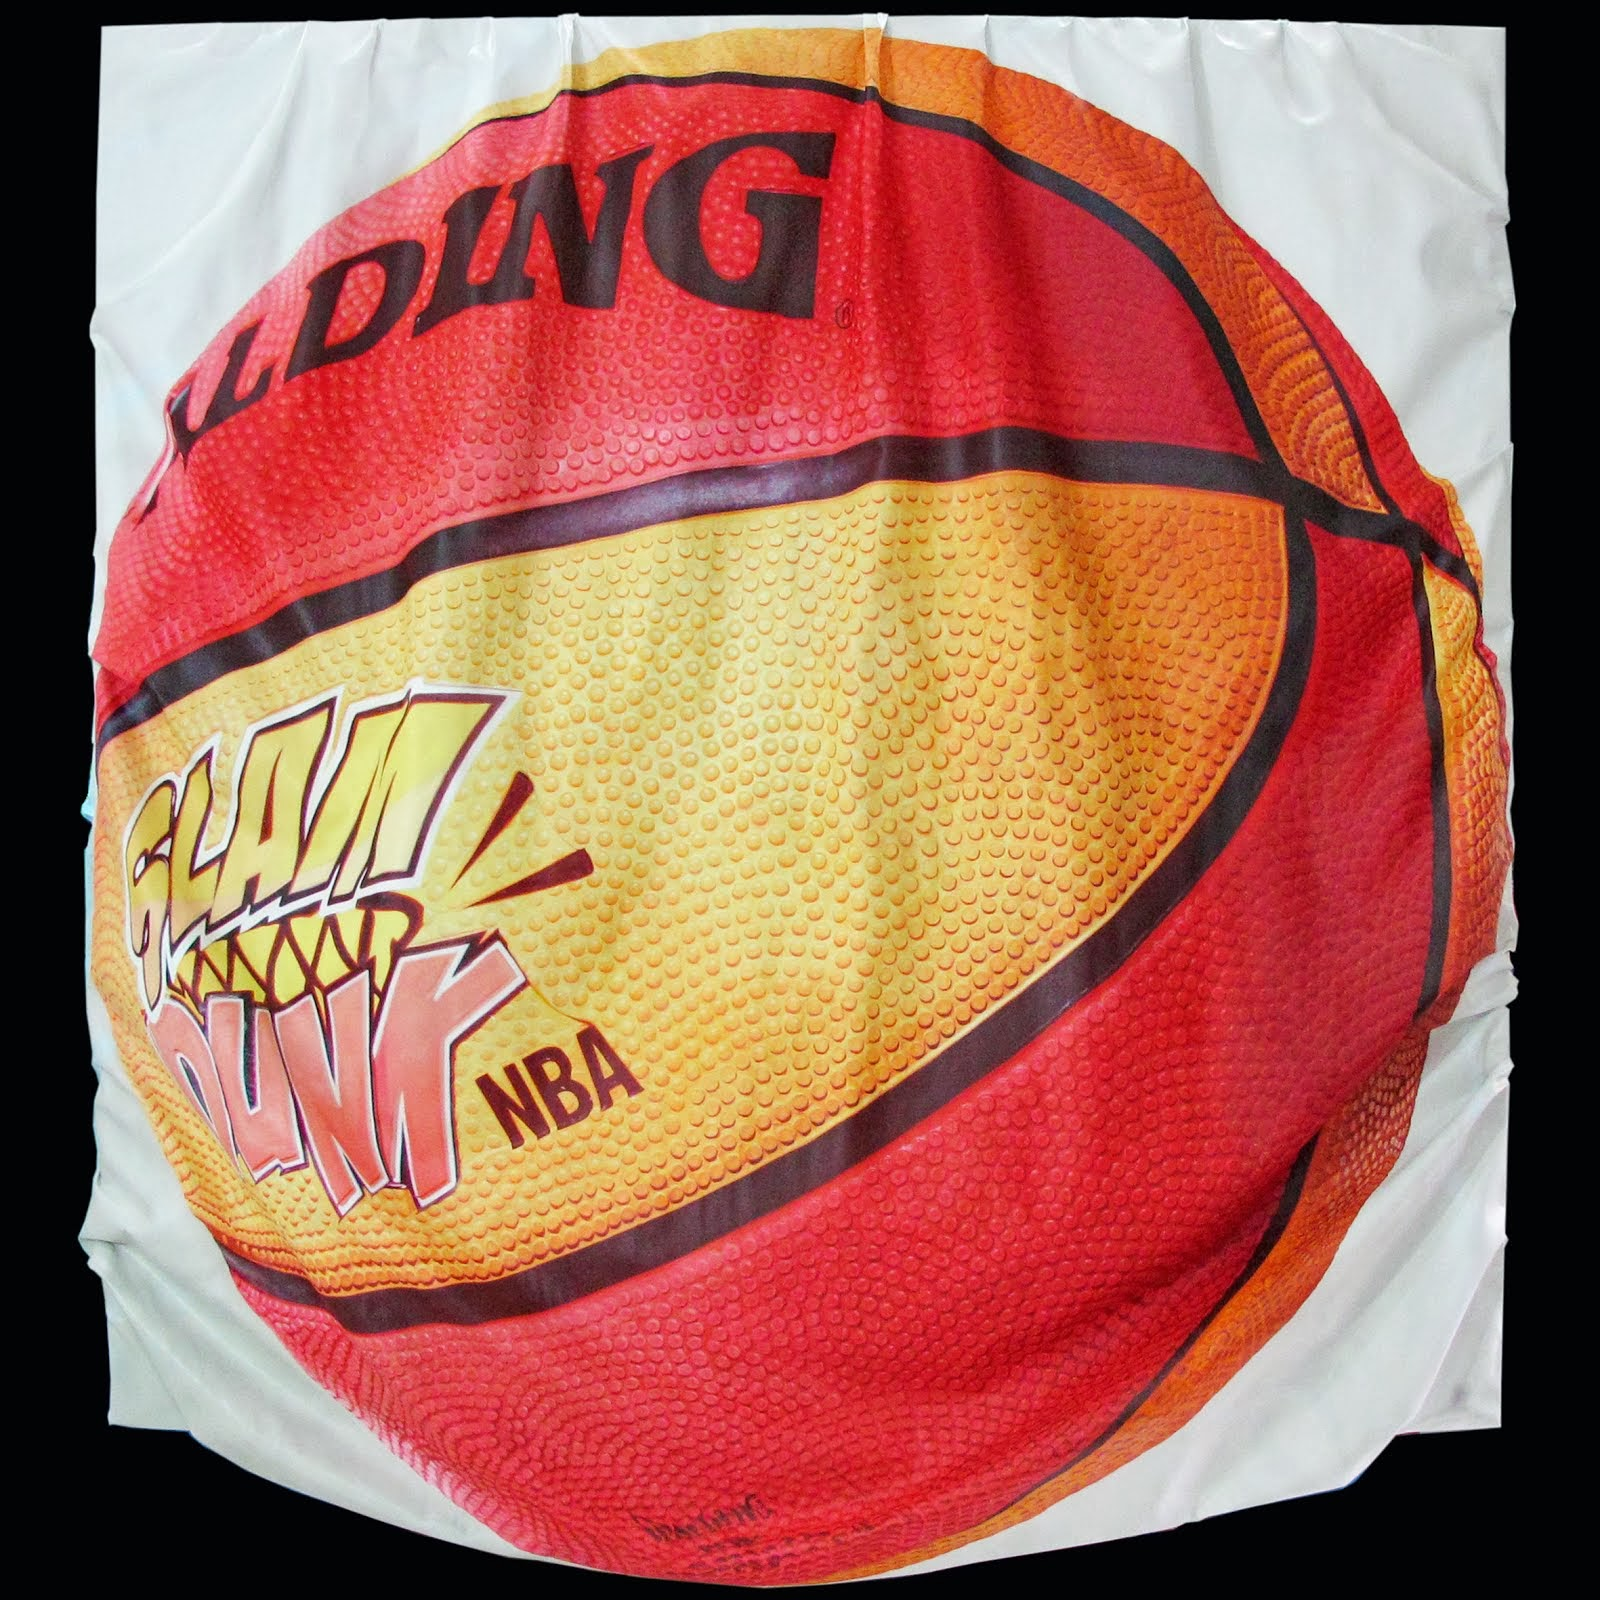 Spalding ball 'melting'